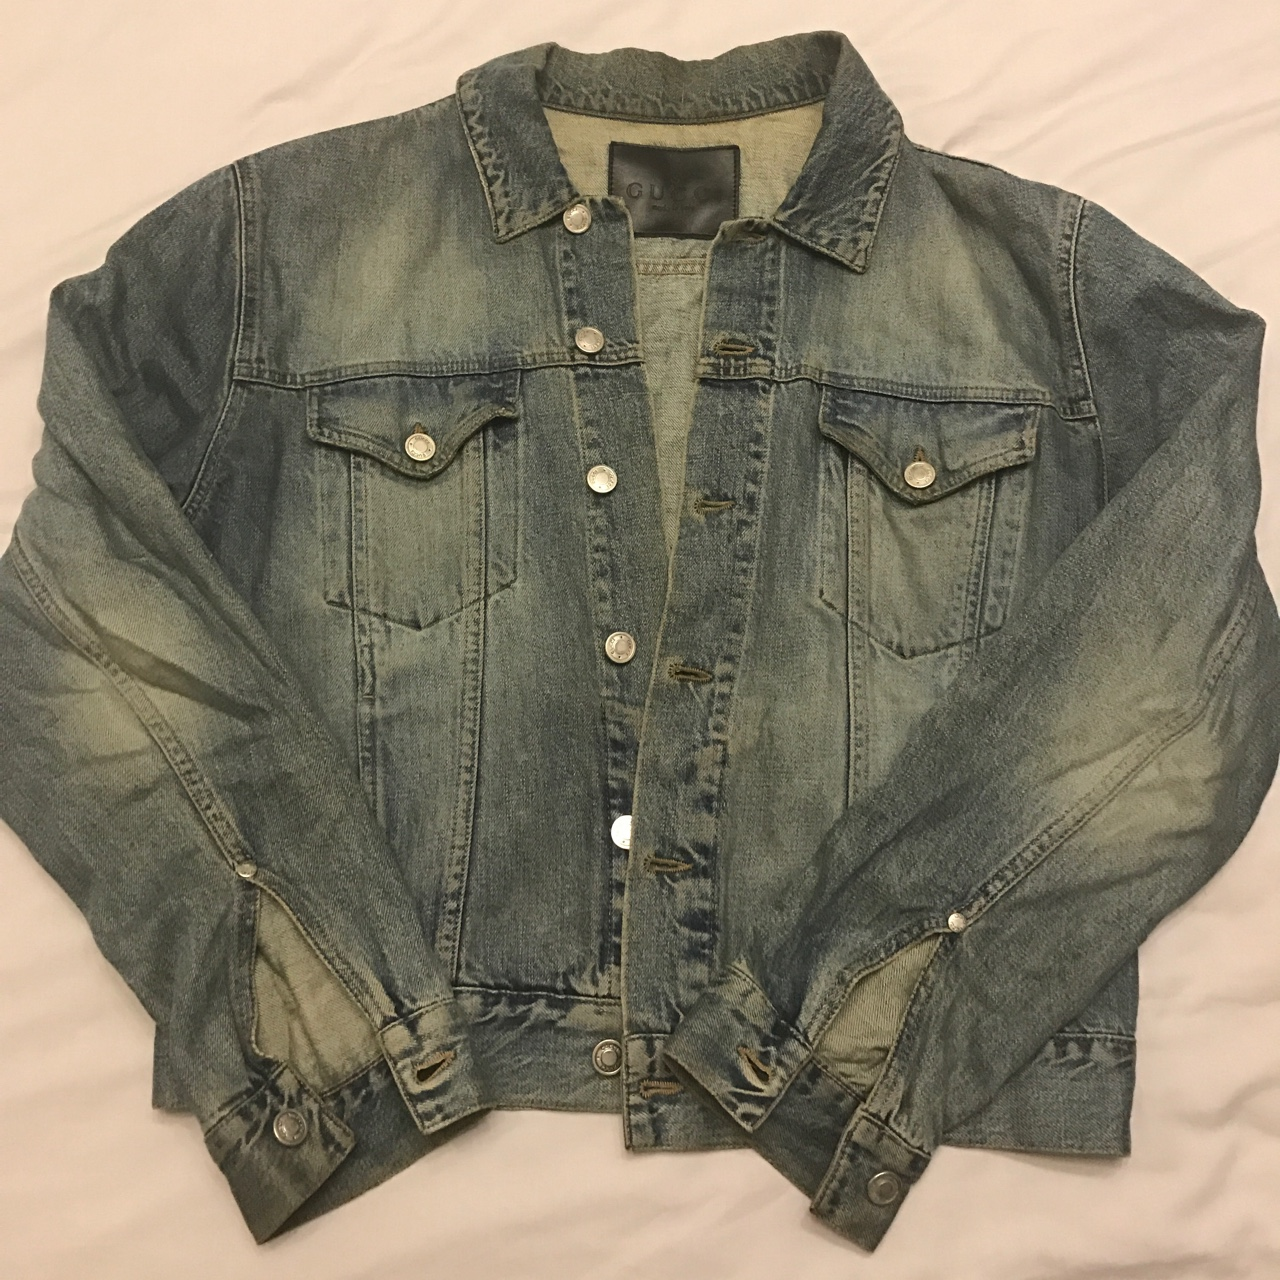 6f29b2c63 naji1002. London, United Kingdom. Vintage Gucci Denim jacket ...